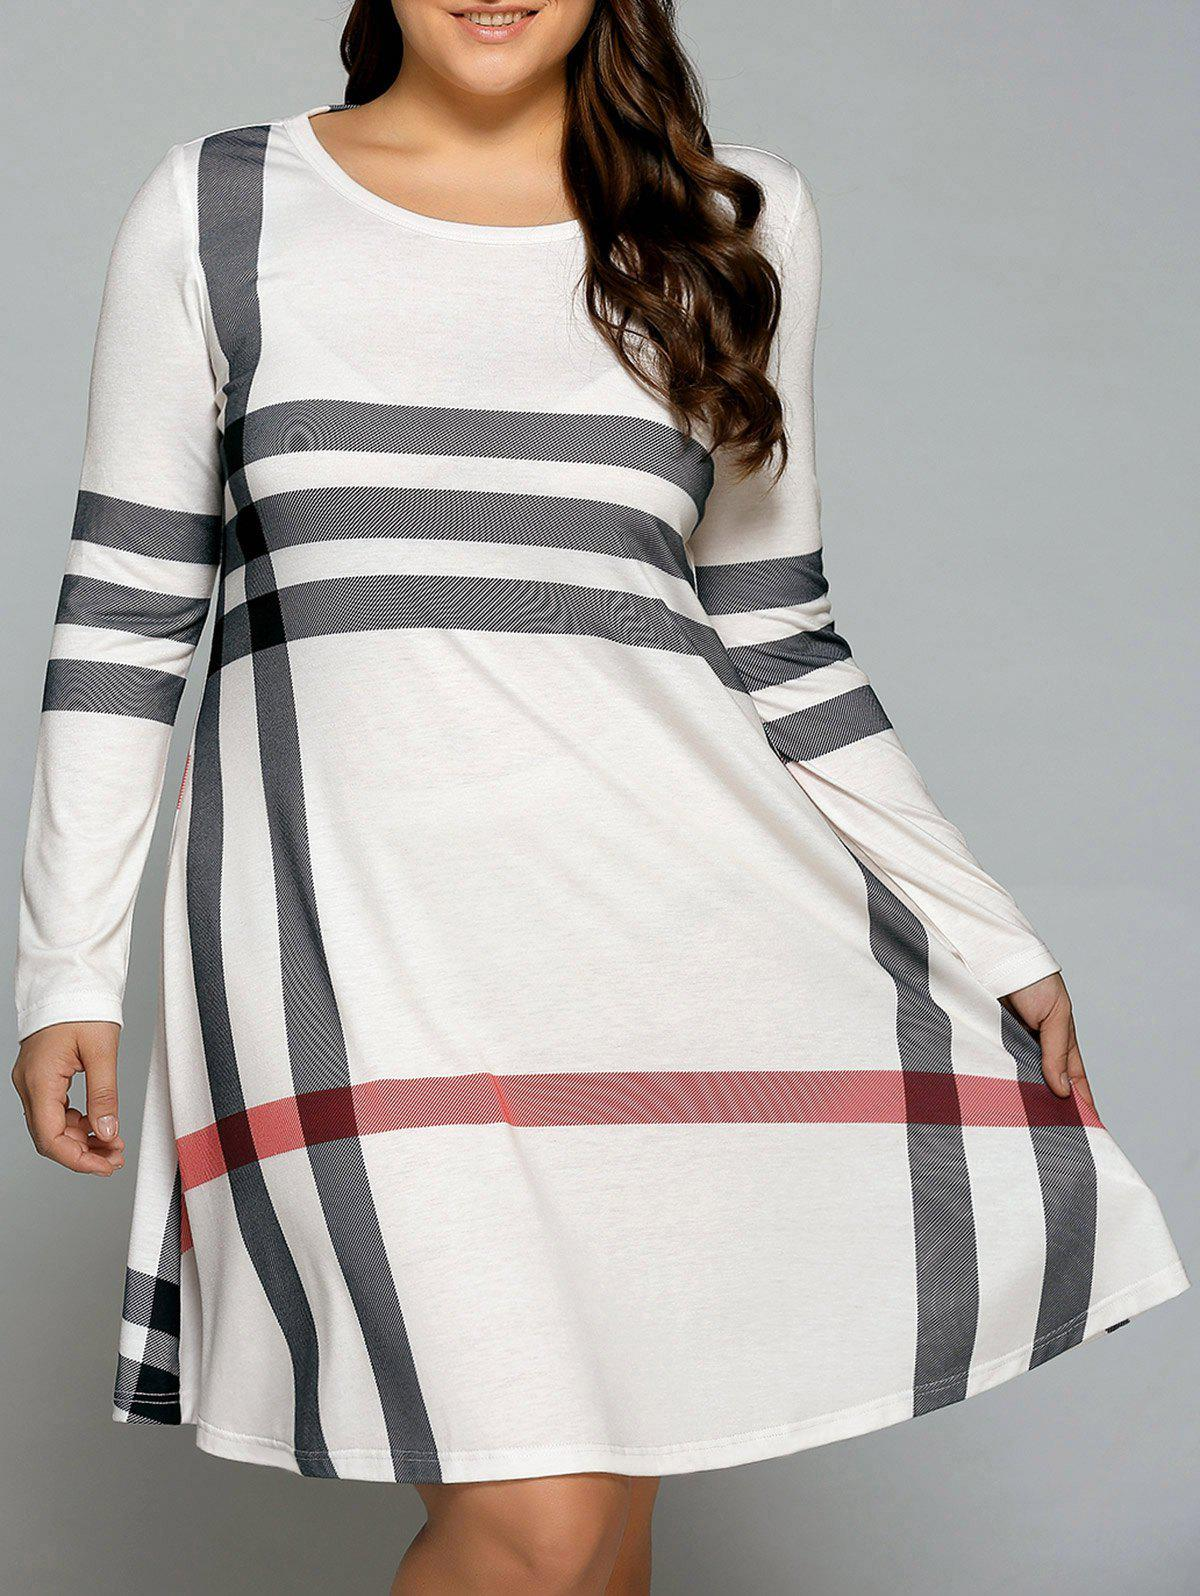 Plus Size Long Sleeve Striped Tee DressWOMEN<br><br>Size: 5XL; Color: OFF-WHITE; Style: Casual; Material: Polyester,Spandex; Silhouette: A-Line; Dresses Length: Knee-Length; Neckline: Scoop Neck; Sleeve Length: Long Sleeves; Pattern Type: Striped; With Belt: No; Season: Fall,Spring,Summer; Weight: 0.3800kg; Package Contents: 1 x Dress;